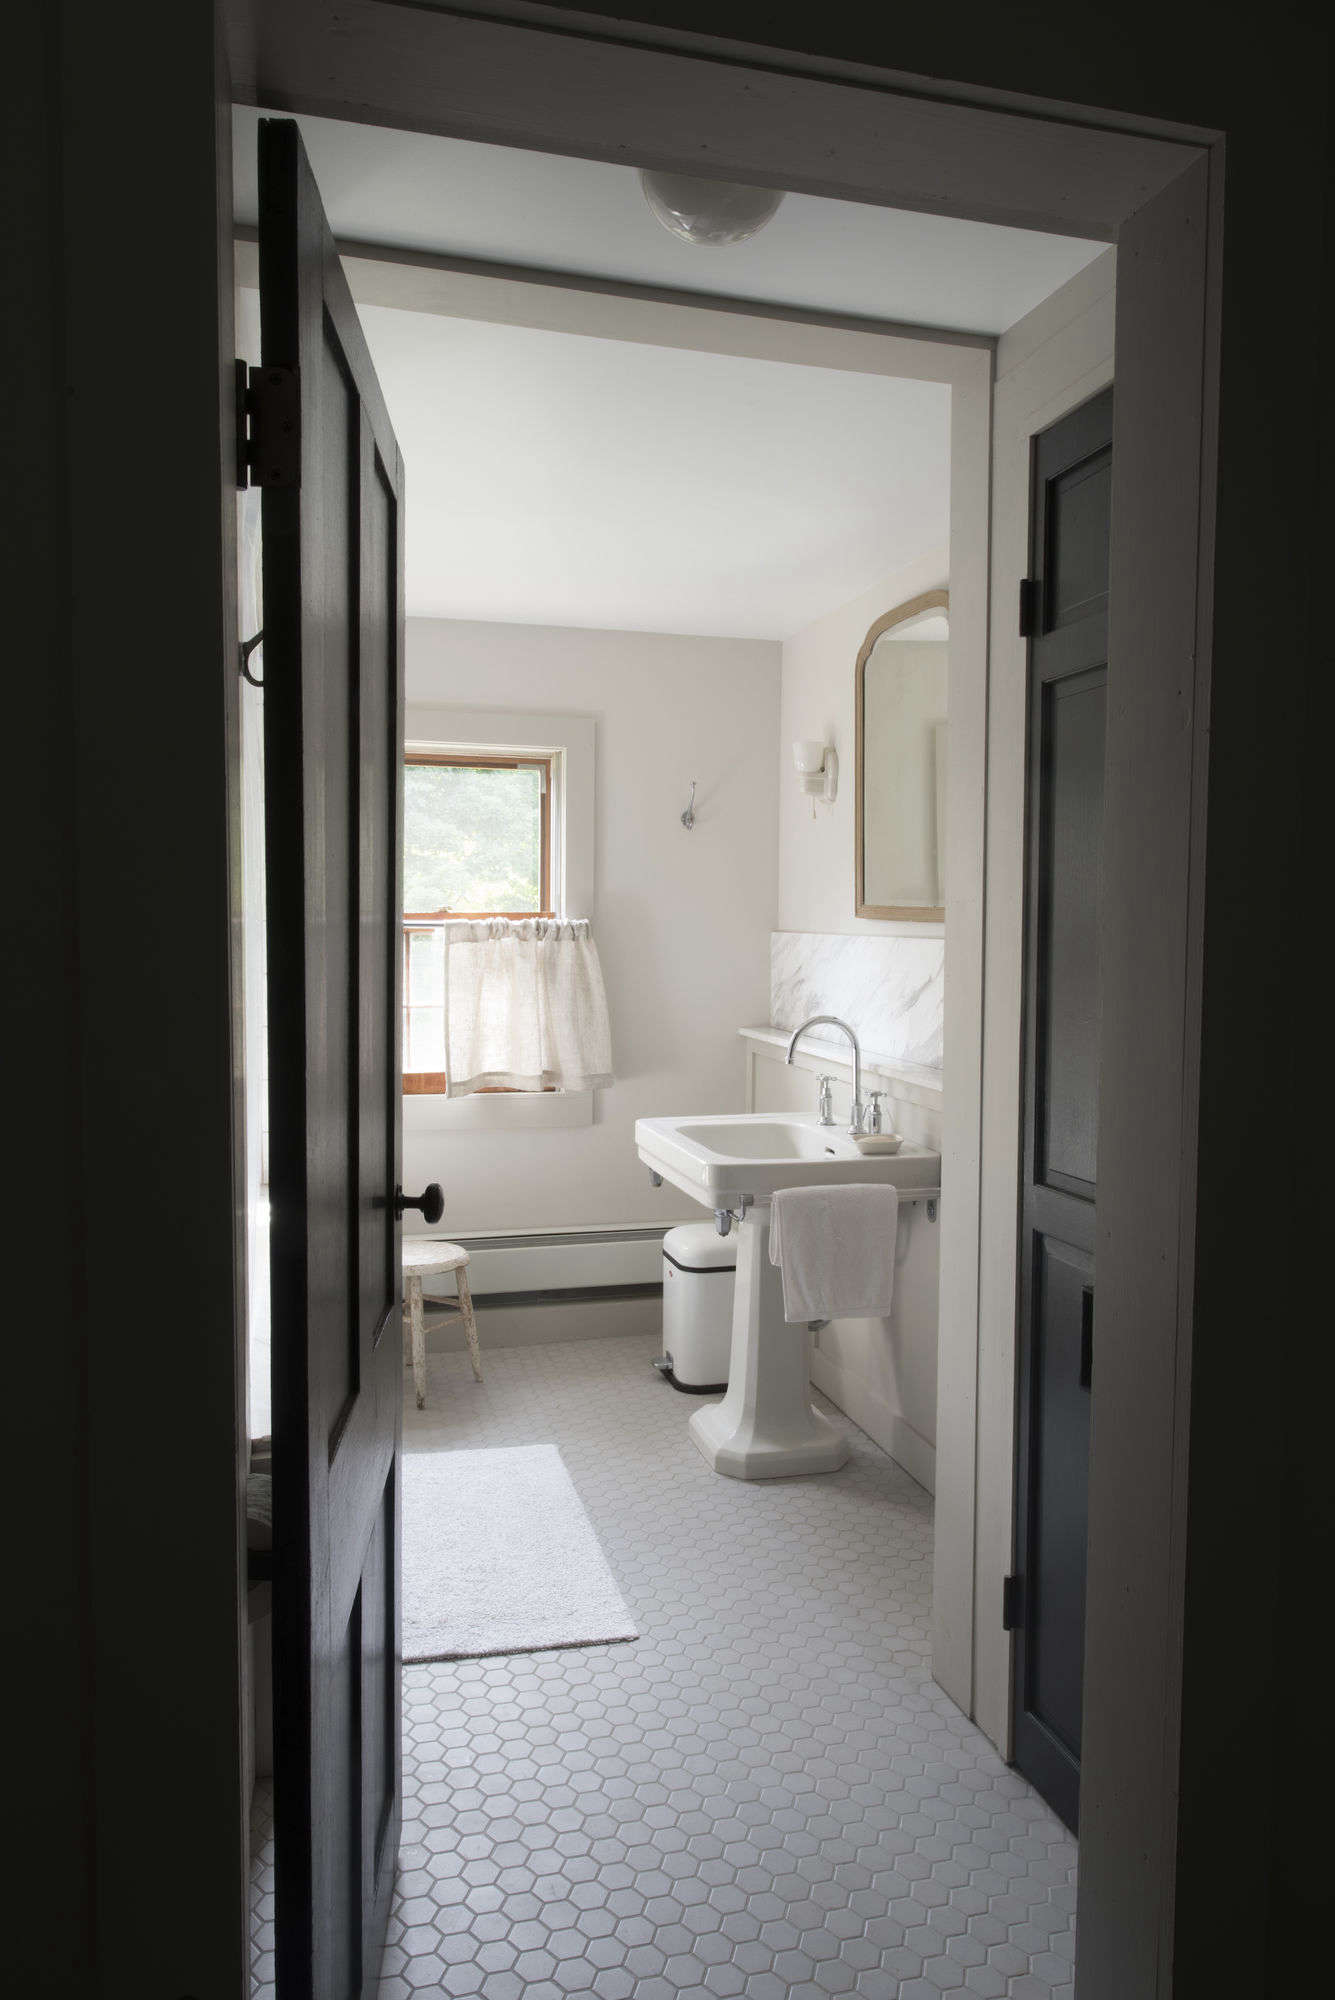 Bathroom Of The Week A 1920s Inspired Bathroom In A Renovated Ny Farmhouse Remodelista